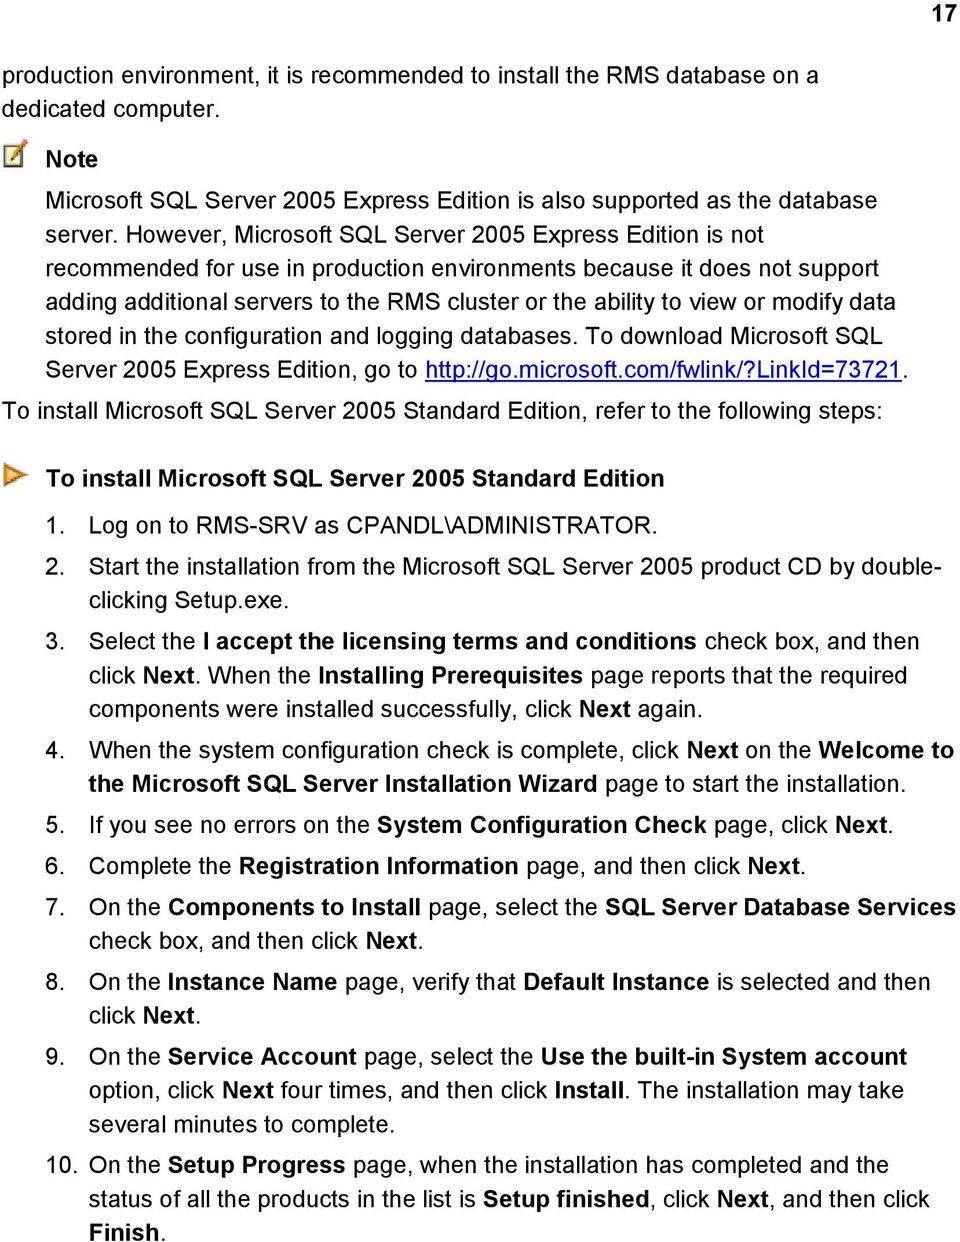 view or modify data stored in the configuration and logging databases. To download Microsoft SQL Server 2005 Express Edition, go to http://go.microsoft.com/fwlink/?linkid=73721.